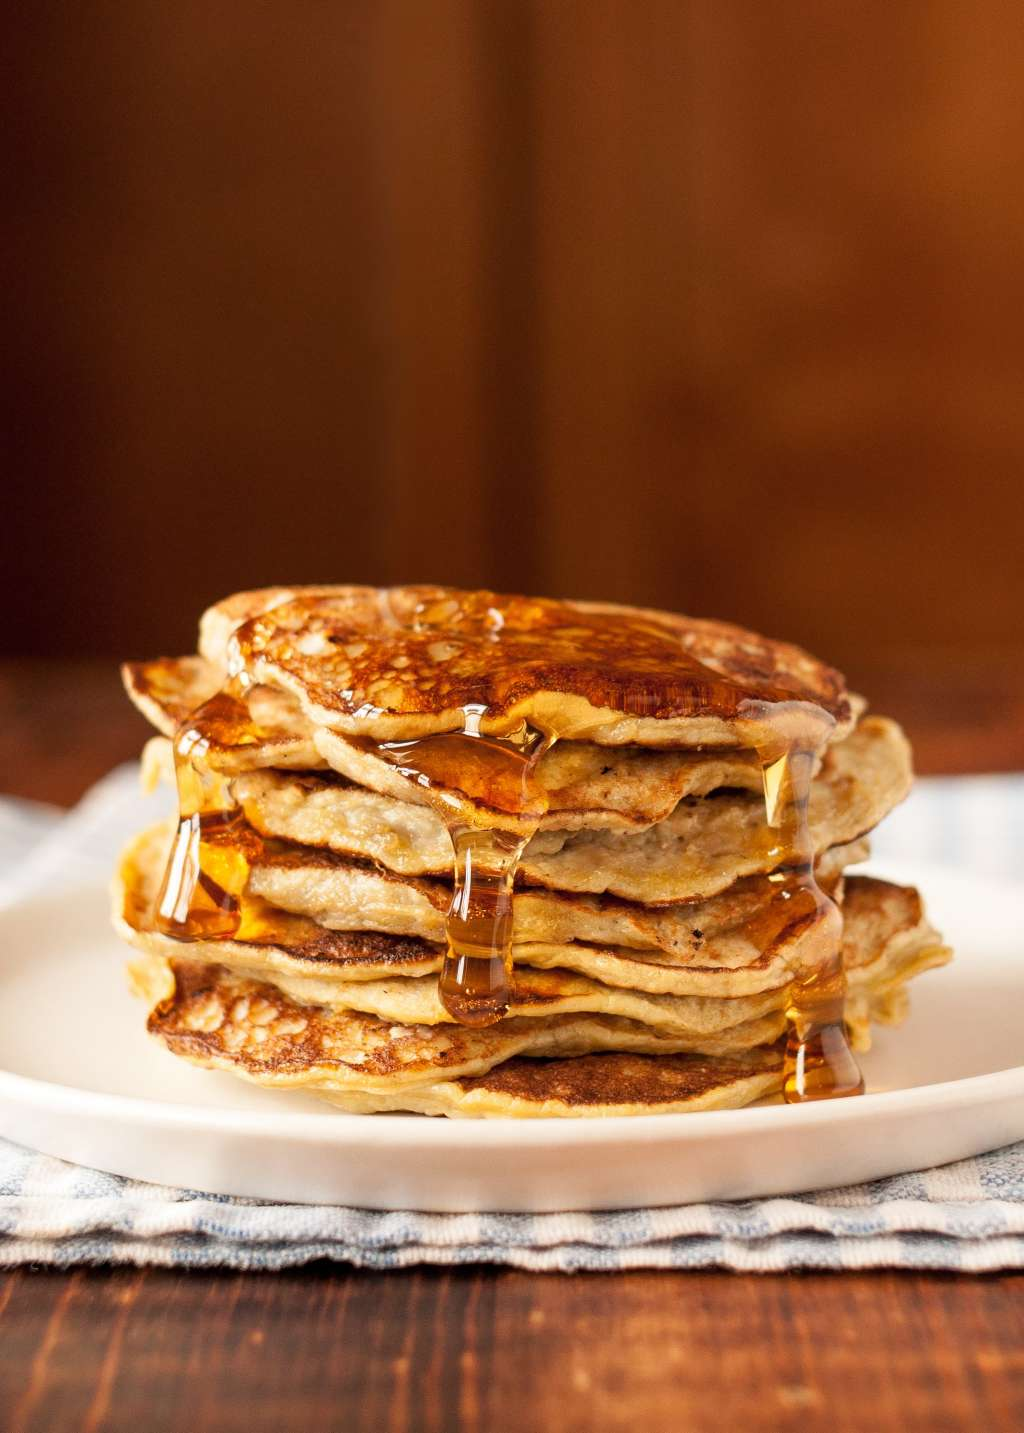 Follow This One Simple Rule for Better Pancakes